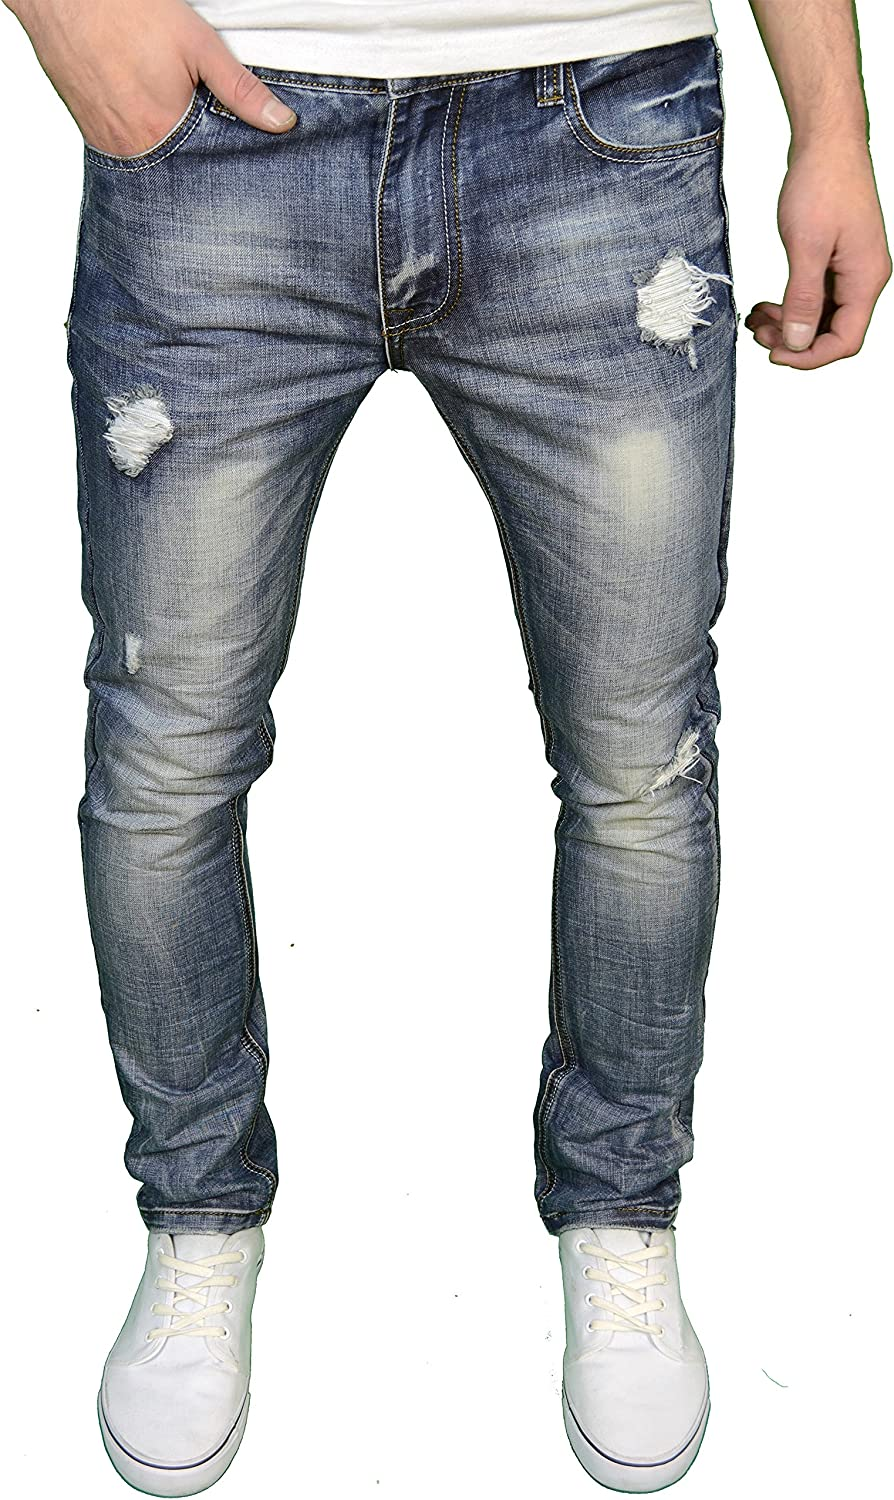 Soulstar Mens Excellence Max 55% OFF Designer Branded Slim Fashio Distressed Ripped Fit